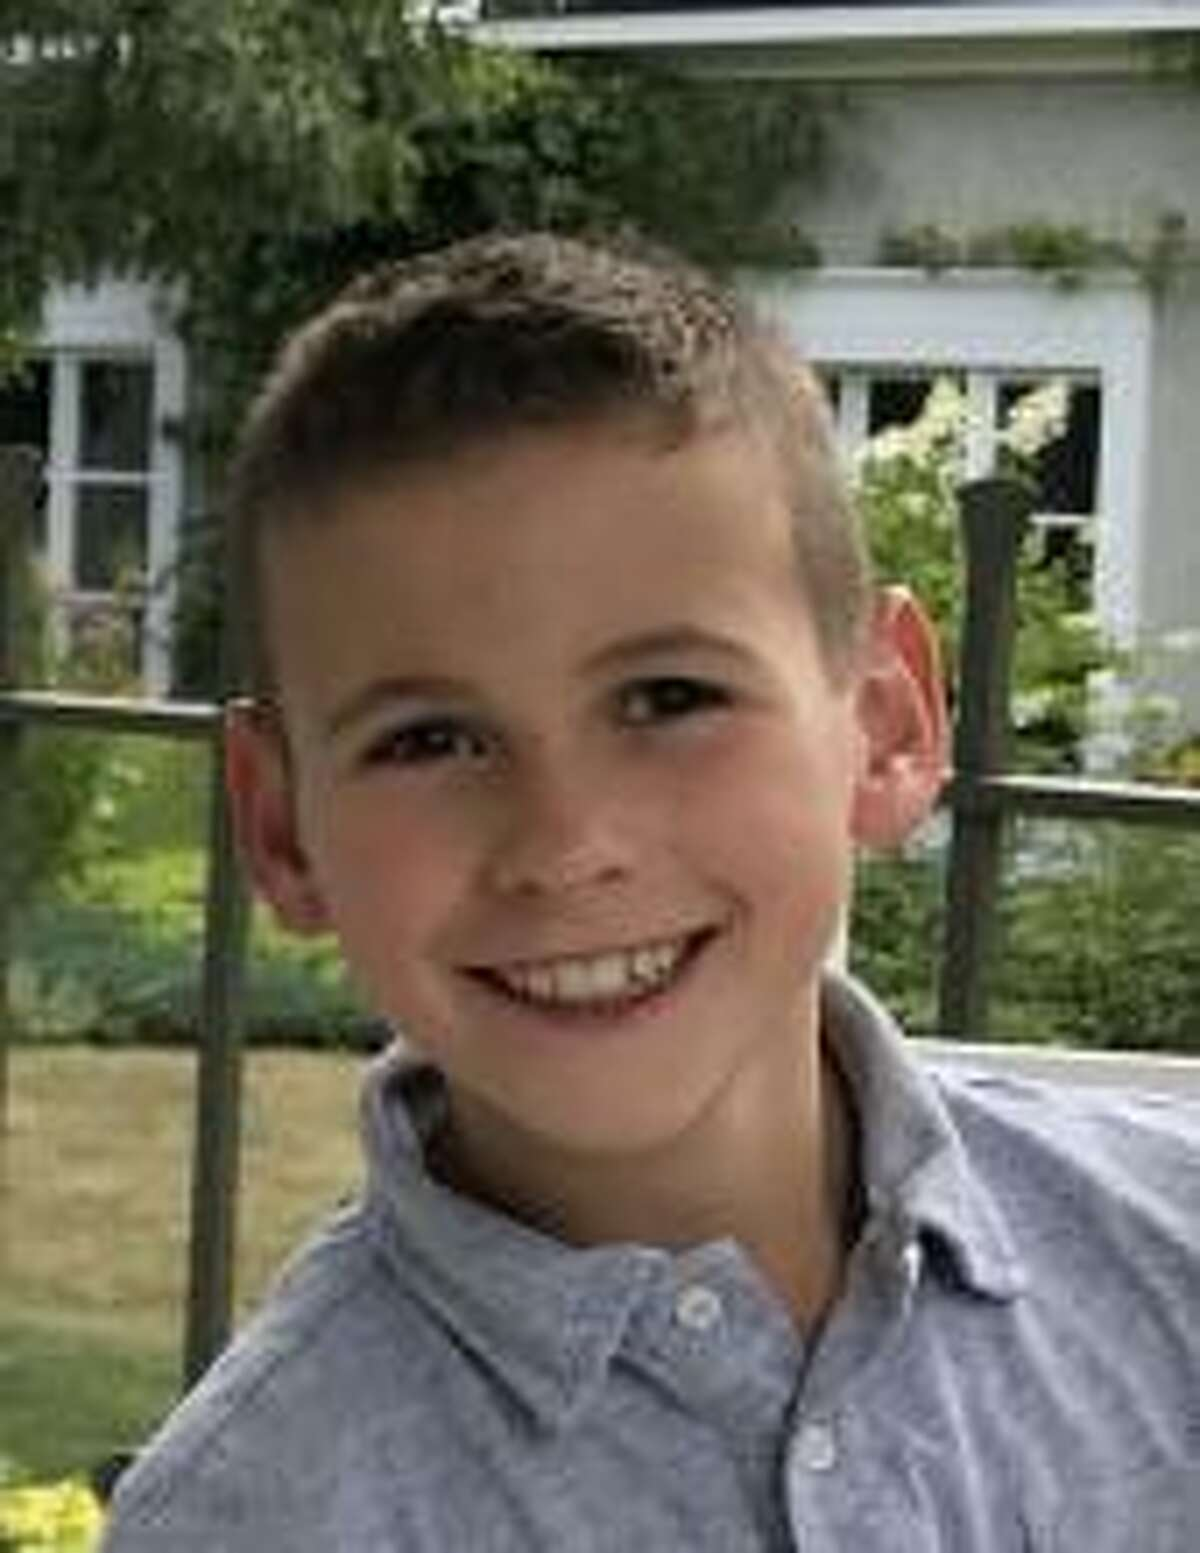 Tristan Barhorst, 10, was died June 12, 2020 after being hit by a vehicle operated by a teenaged driver, as he crossed the street after making a purchase from an ice cream truck.